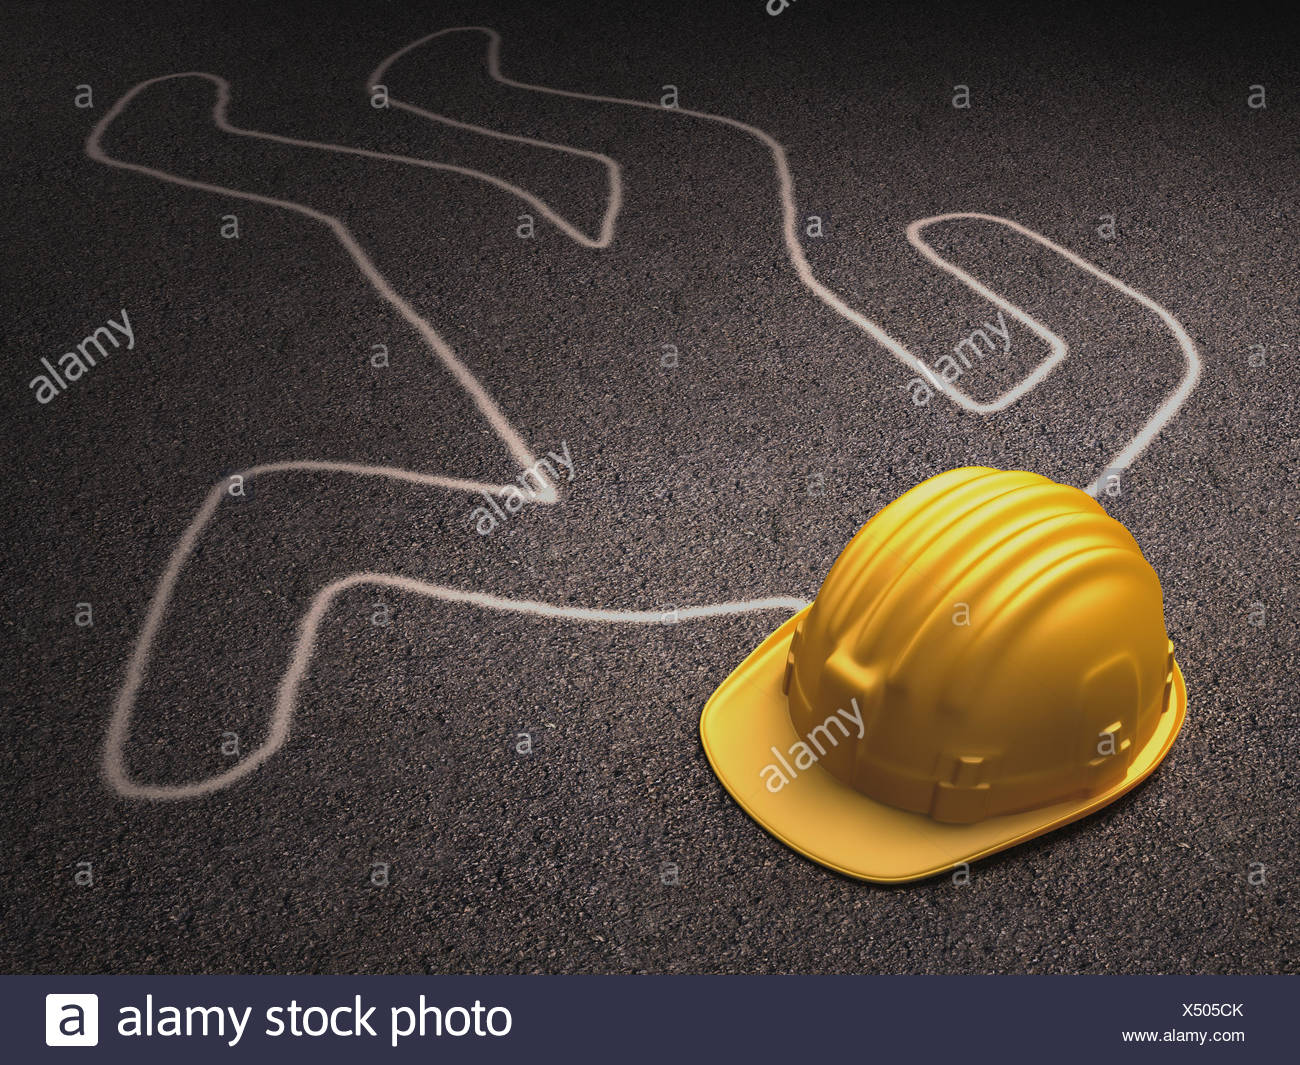 A Helmet Over The Dead Body Outline